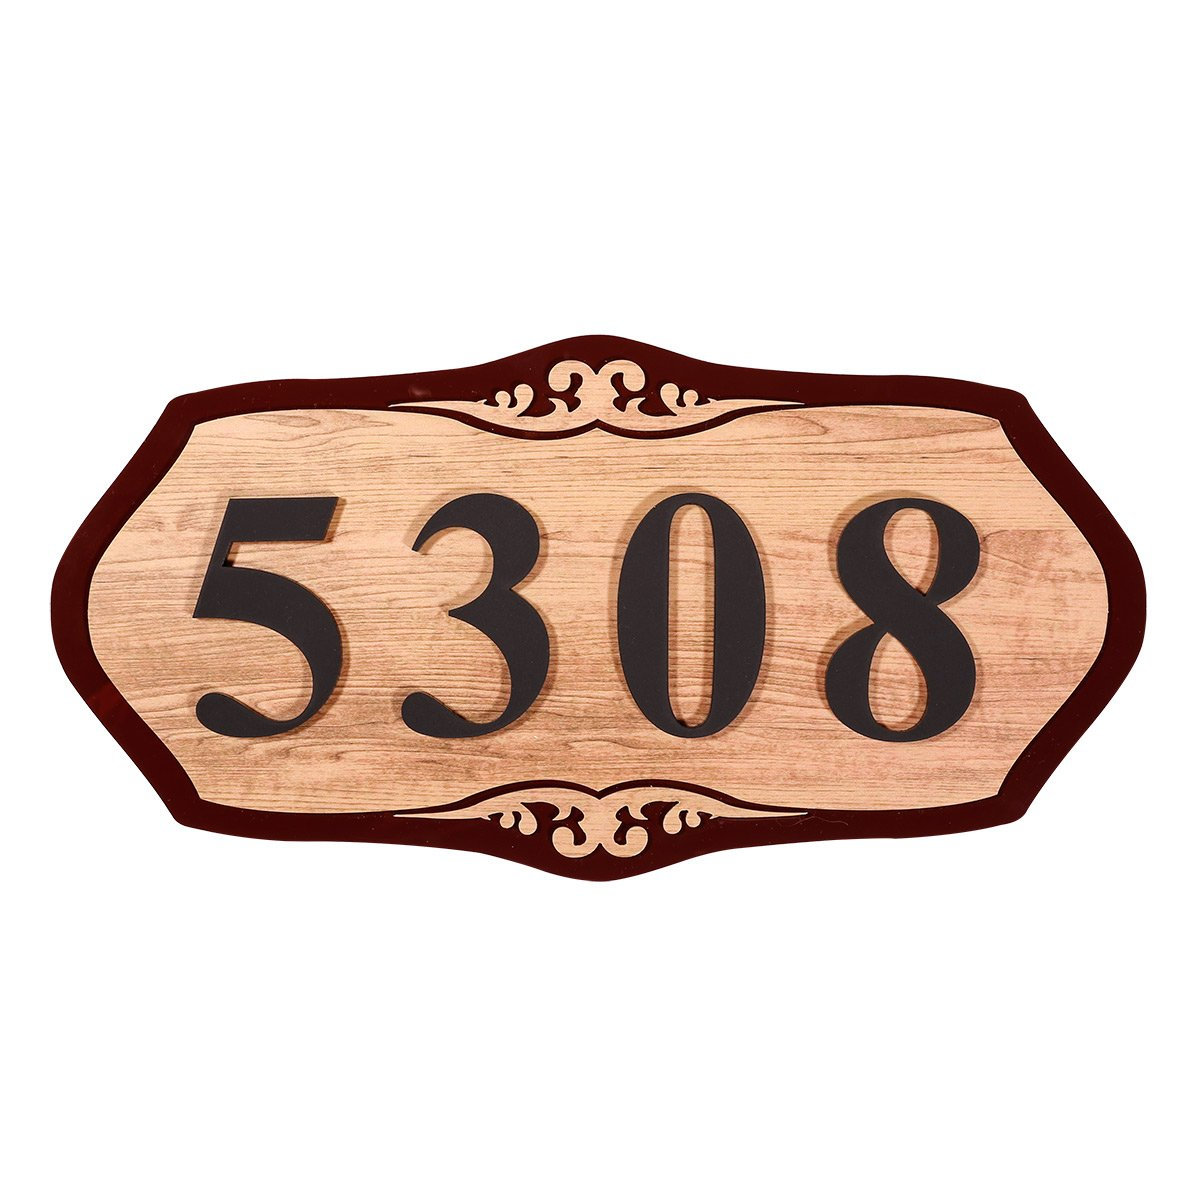 WaaHome House Address Plaques Personalized Address Signs For House Home Hotel Office,11.8''X 5.9''